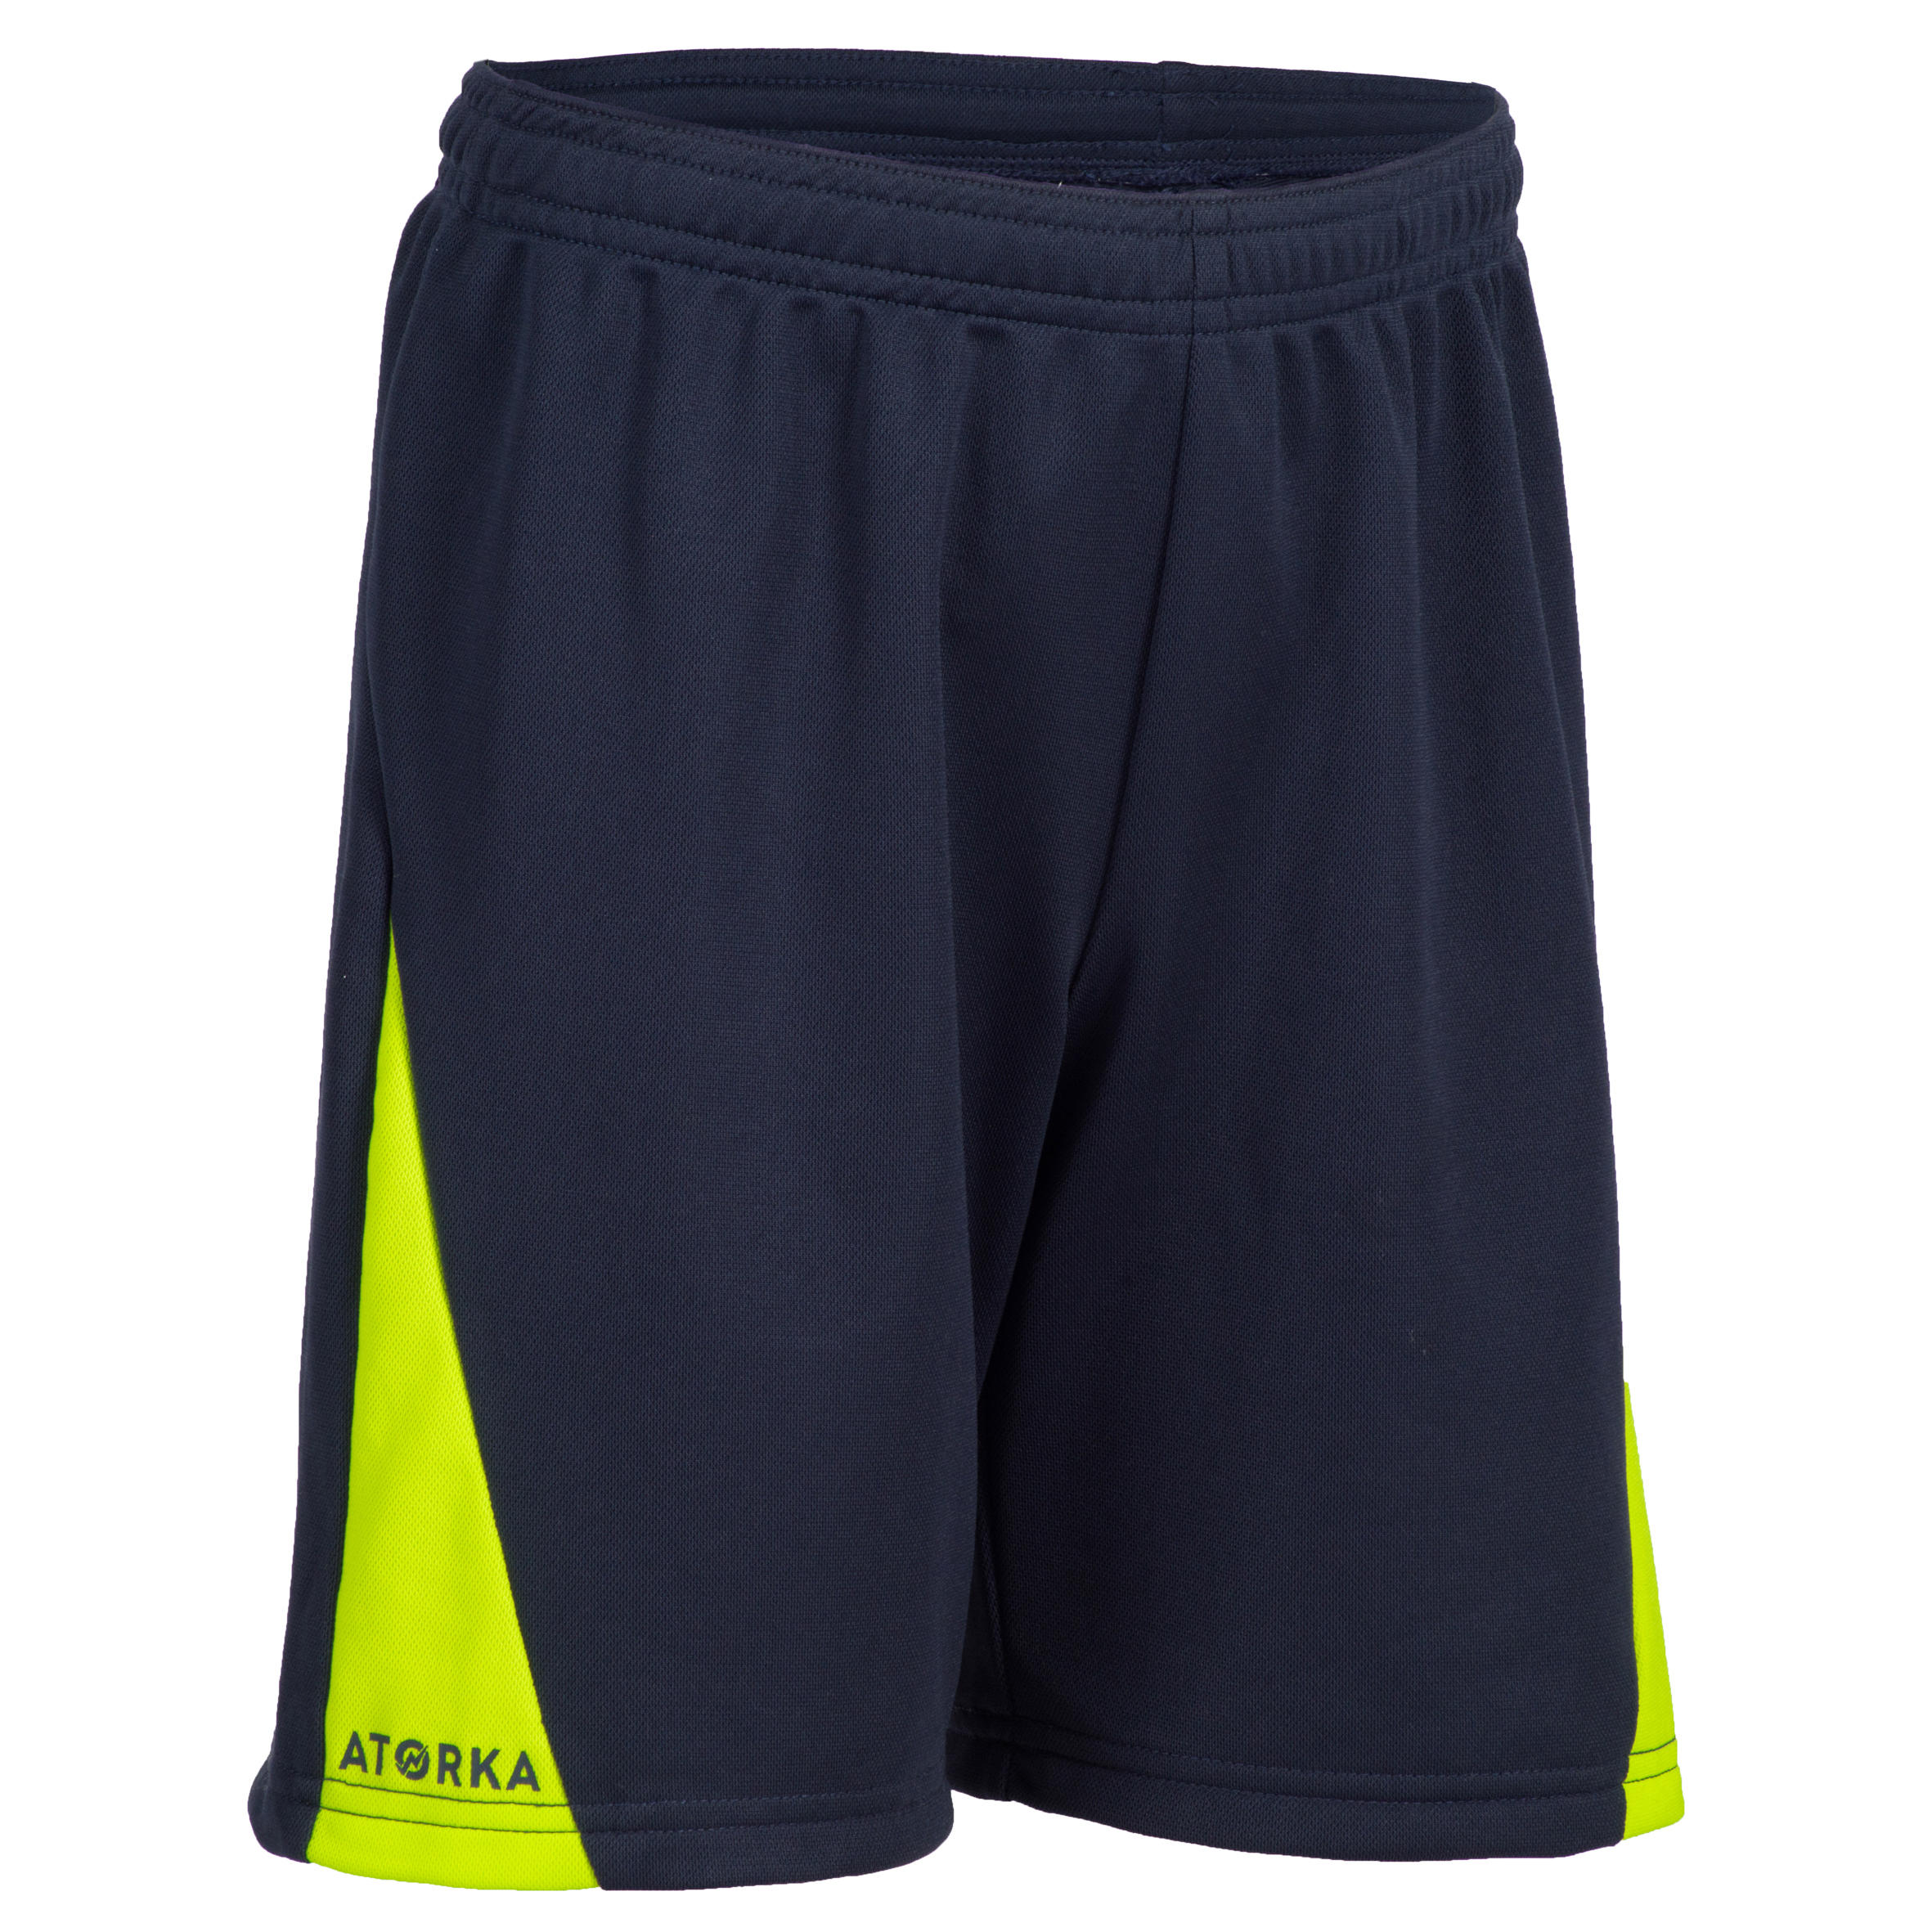 H100 Boys' Handball Shorts...